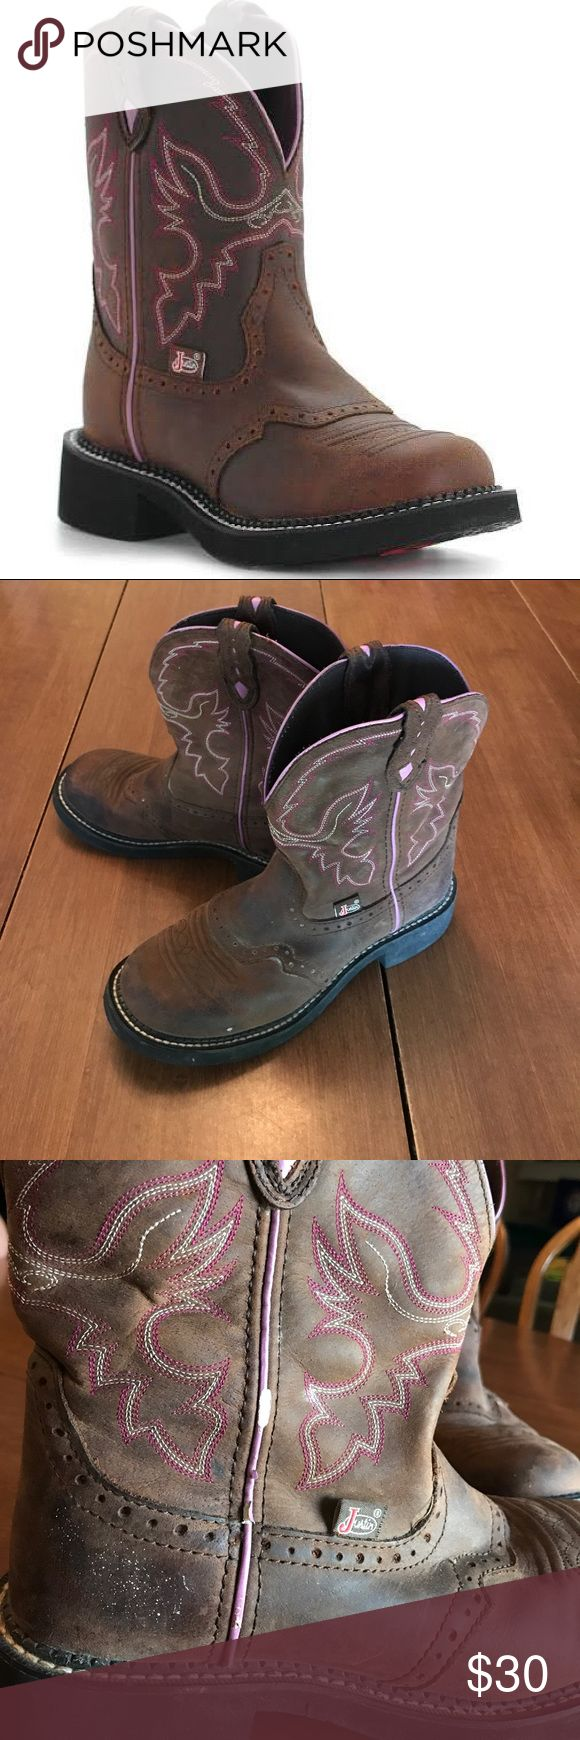 Justin Gypsy Boots Justin gypsy boots. Gemma style in aged bark. Some scuffing on one side, but still in great shape. Justin Boots Shoes Ankle Boots & Booties